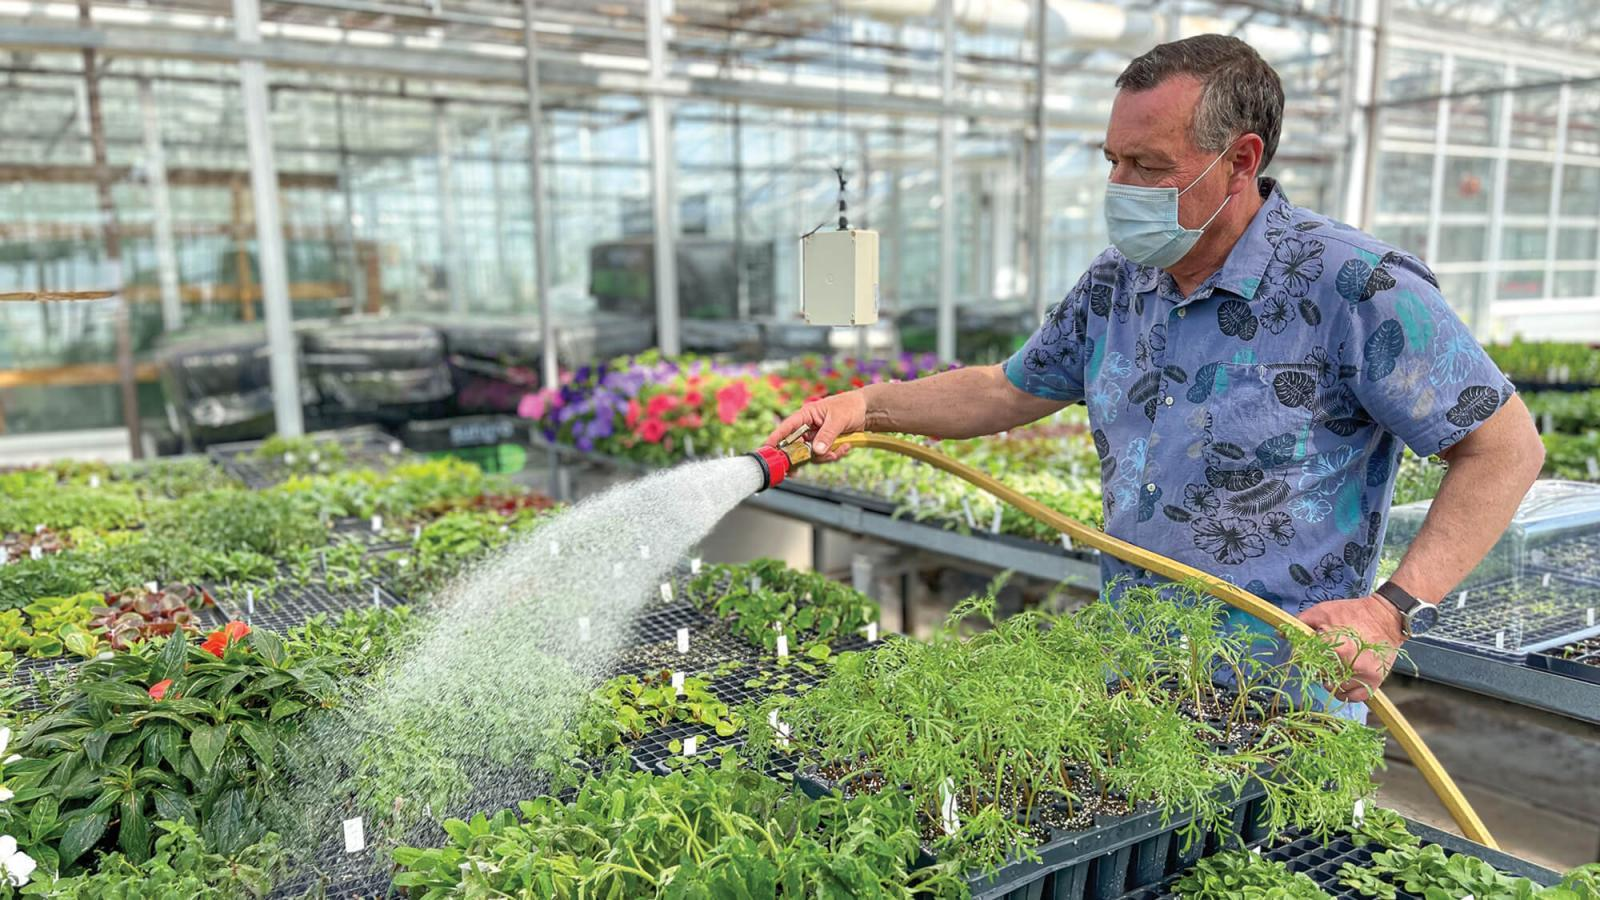 Watering young plants that were propagated by seed in 288 cell plug trays.